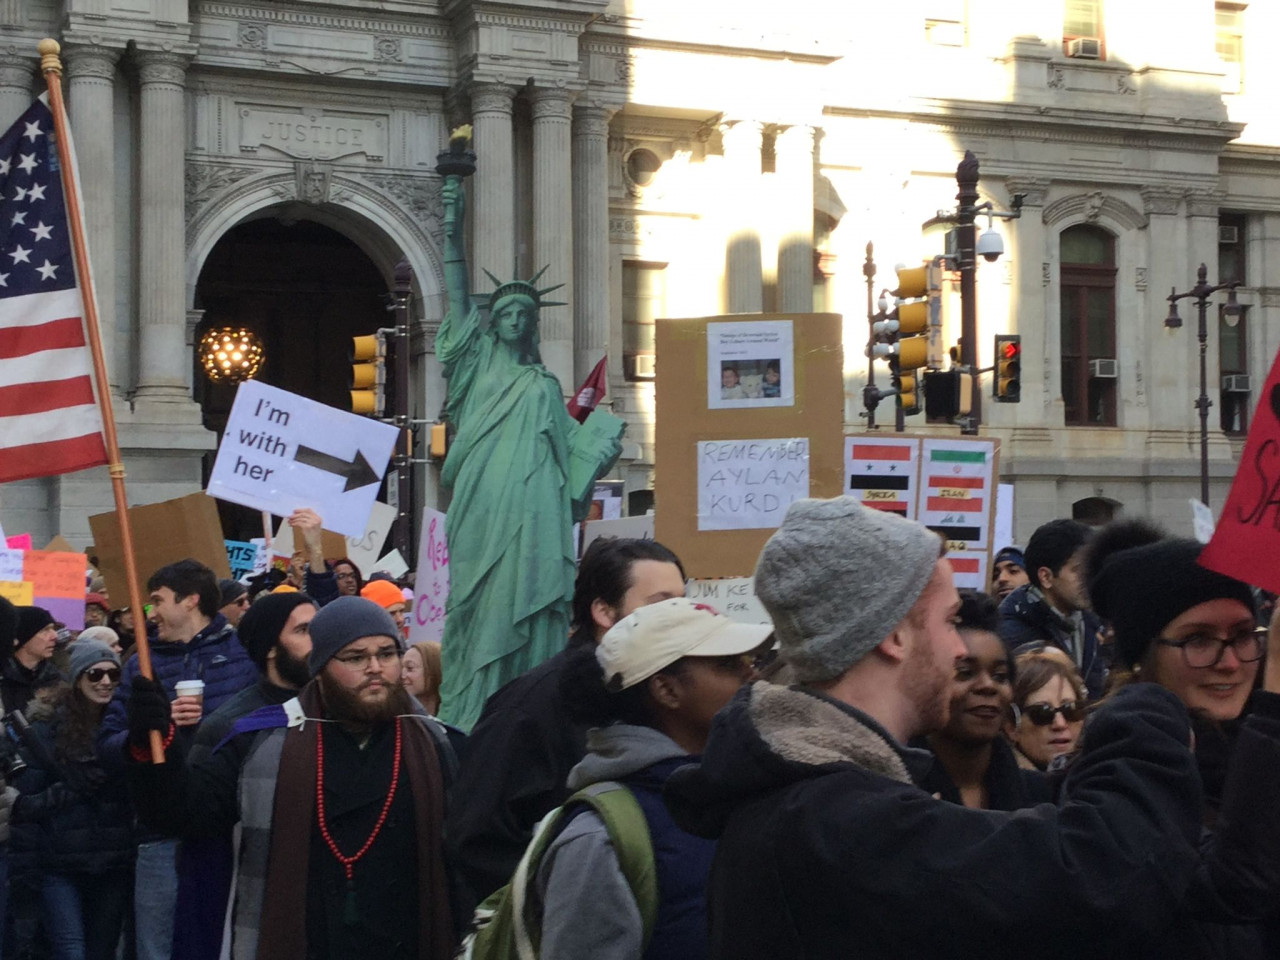 Immigrant Rights Protest - Philadelphia - February 4, 2017 - I'm with Lady Liberty